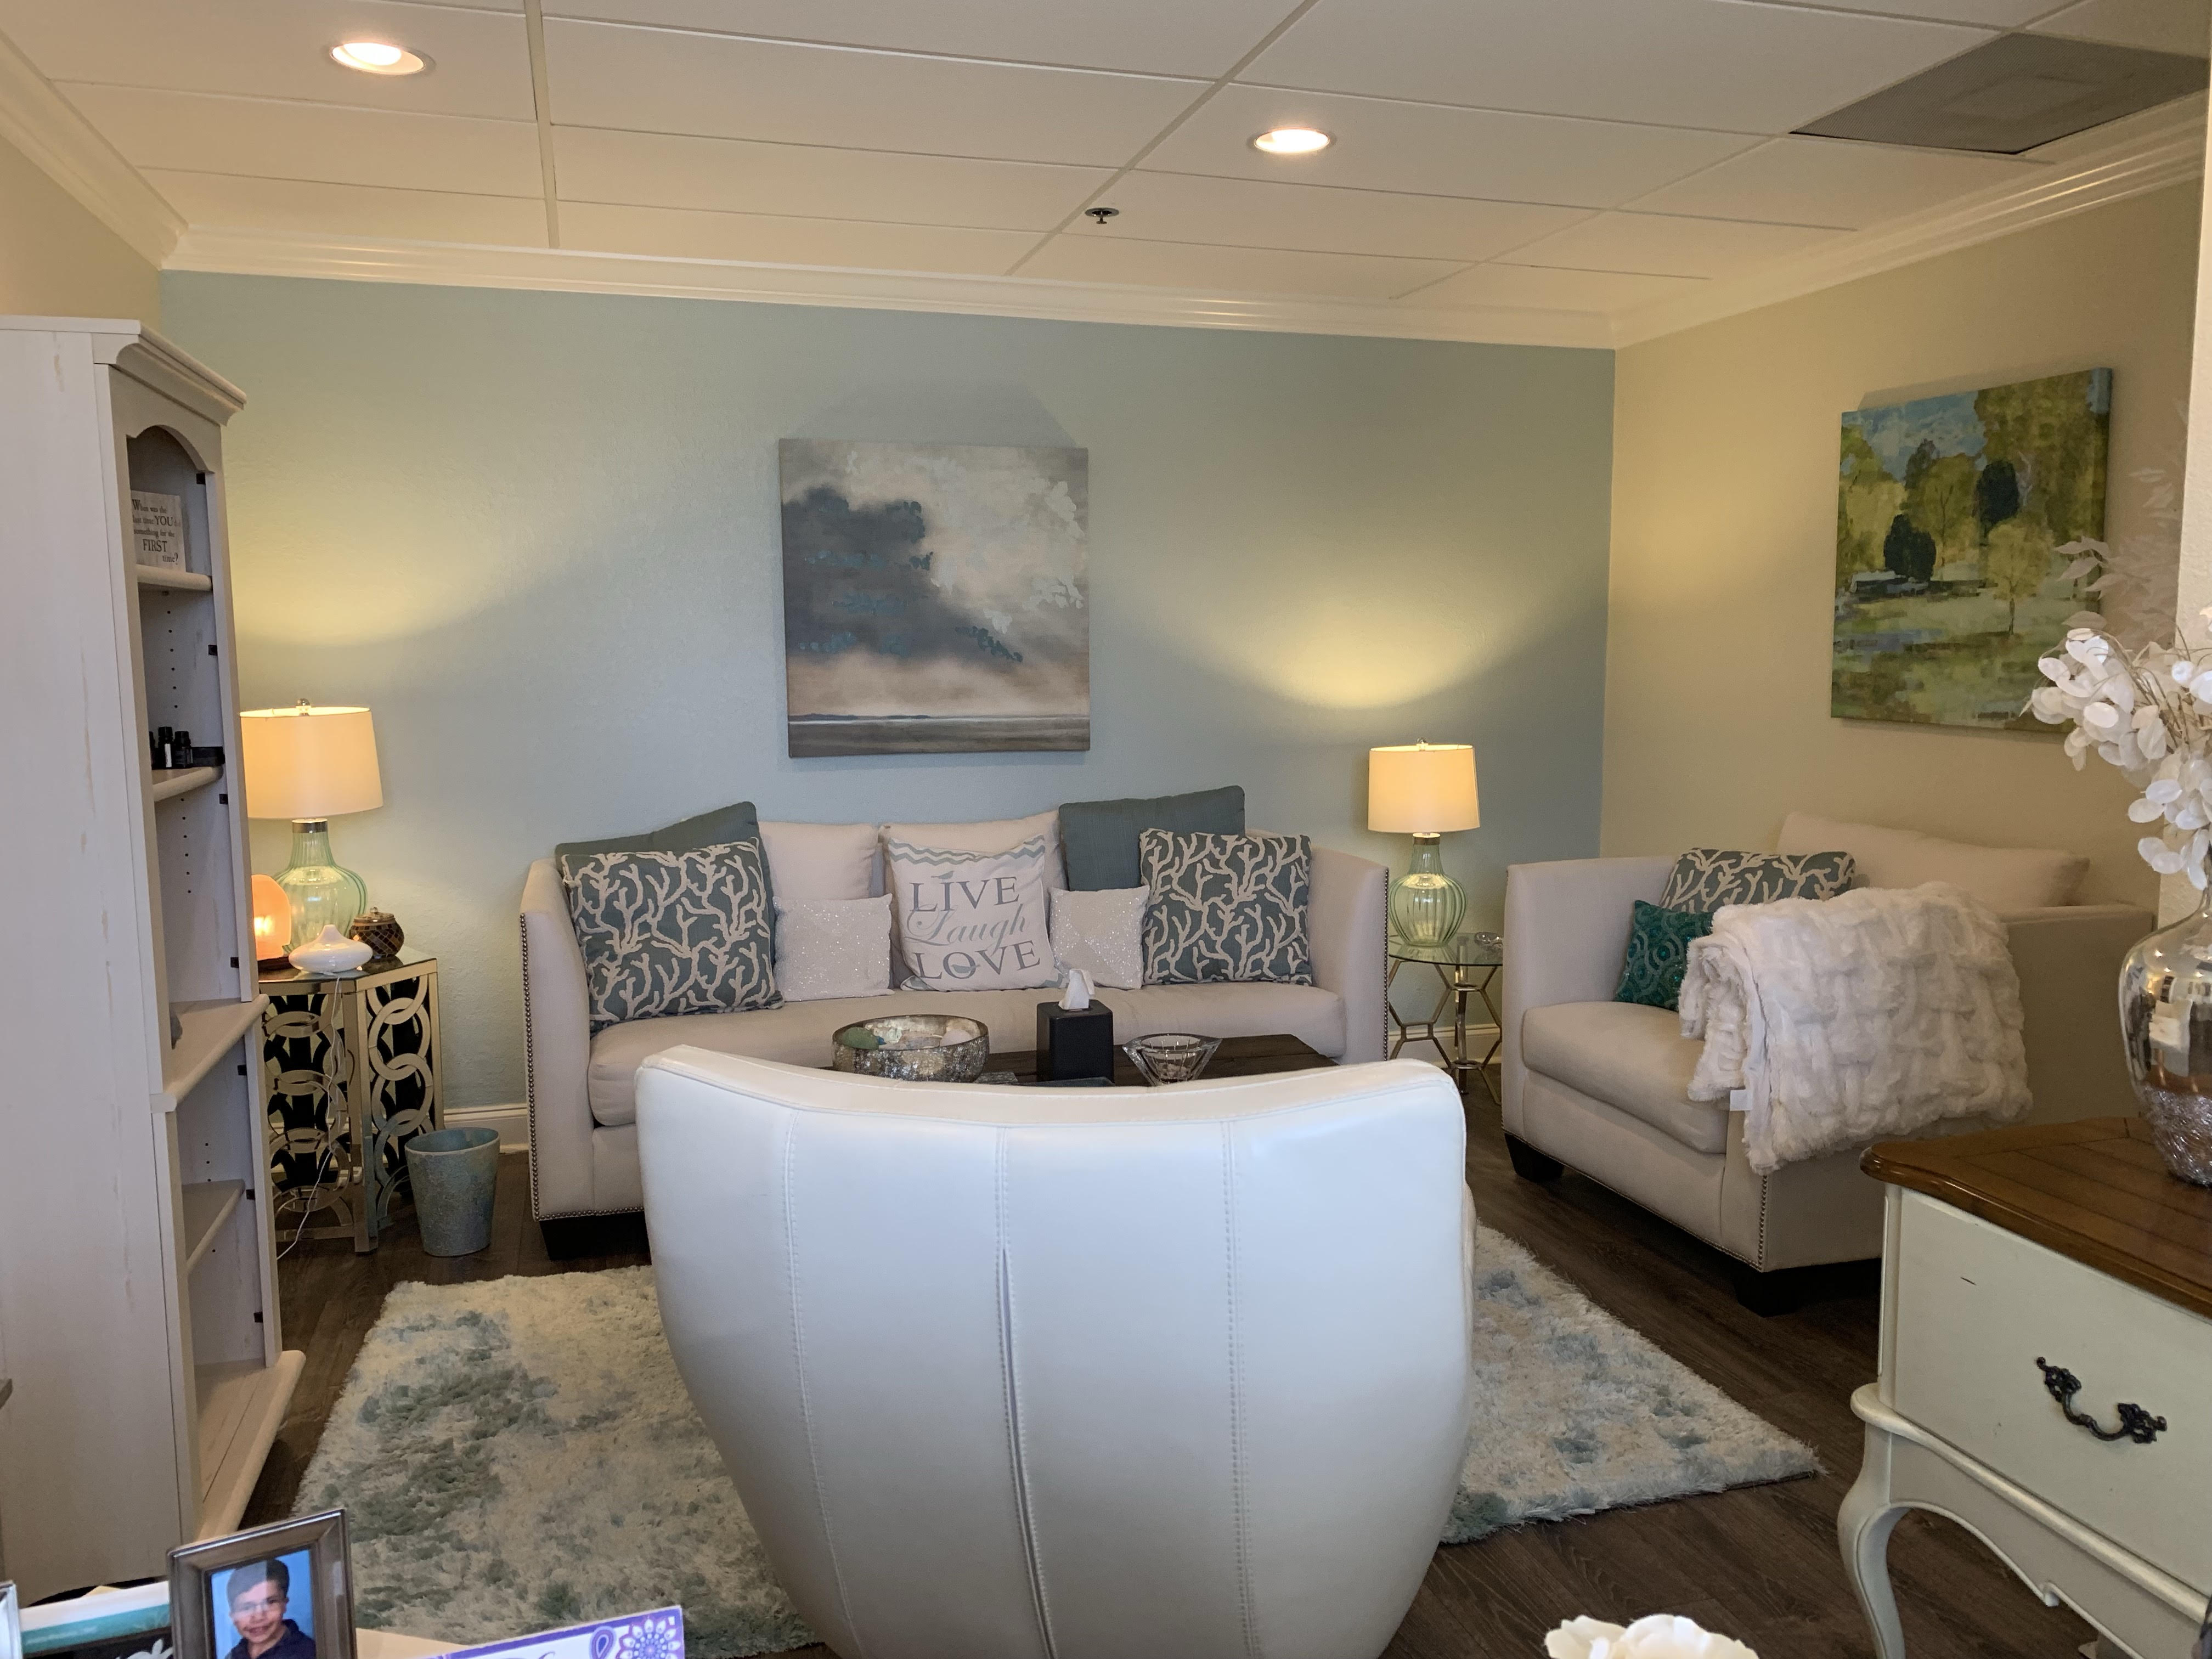 I May Be the Right Therapist For You If - Heart Connection Center